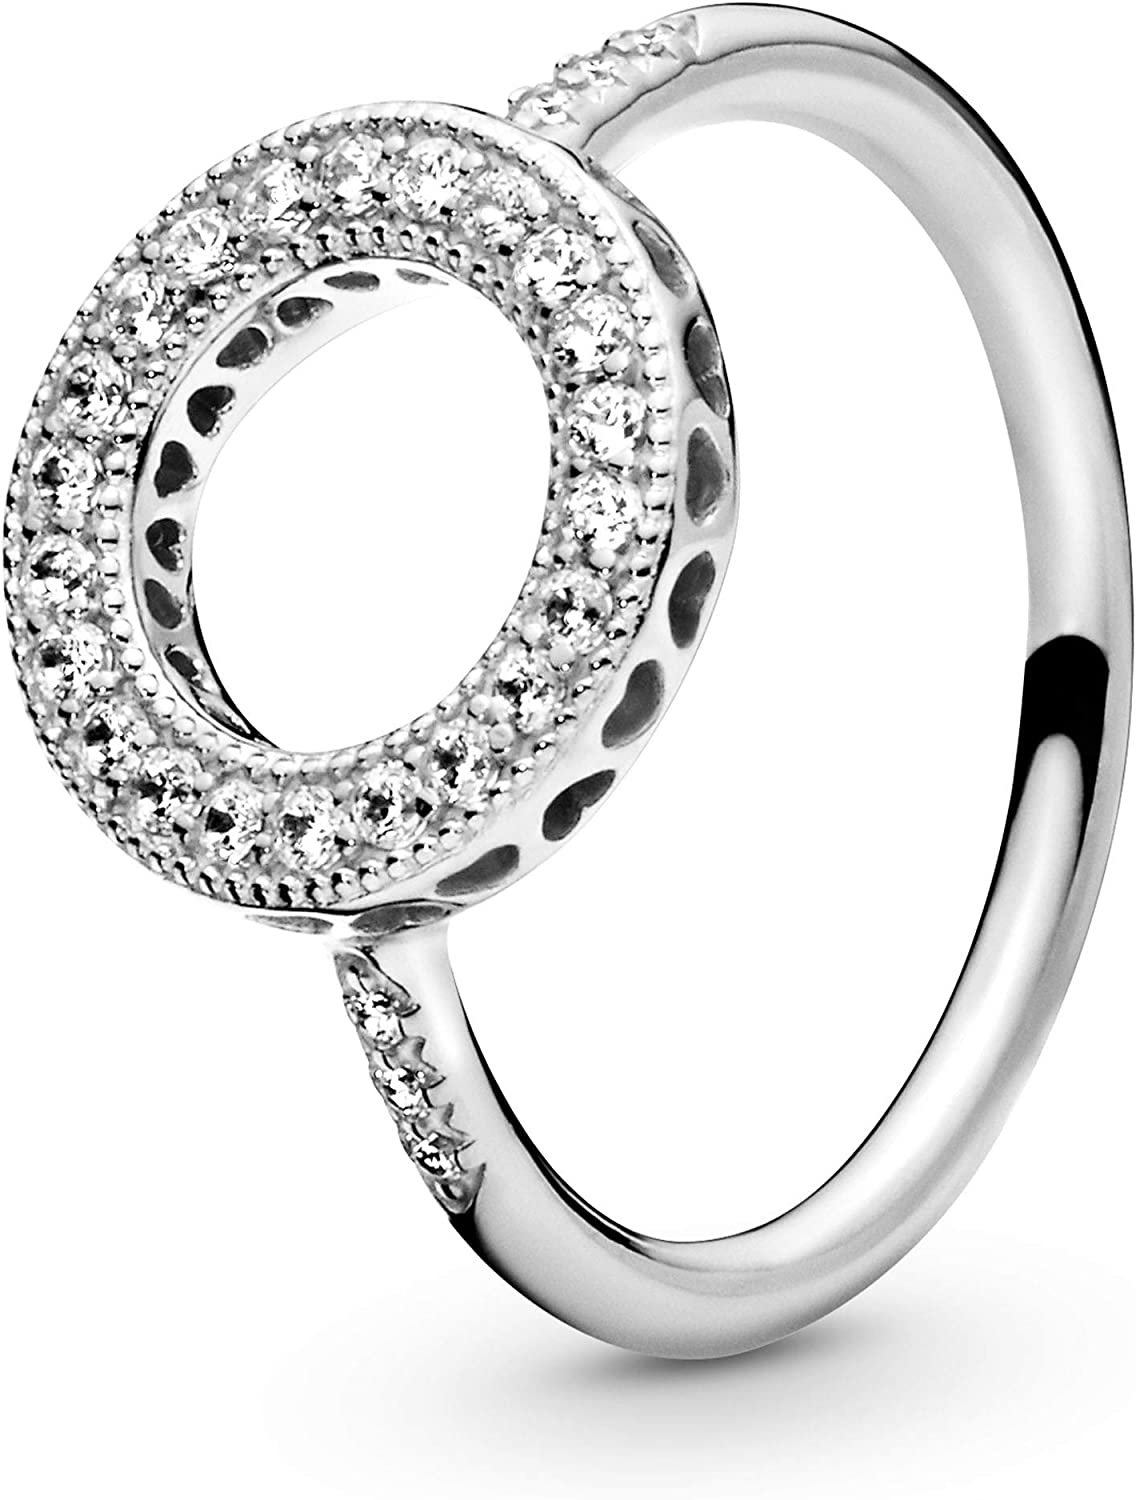 Pandora Jewelry Hearts of Halo St Sale Special Price Cubic in Ring specialty shop Zirconia